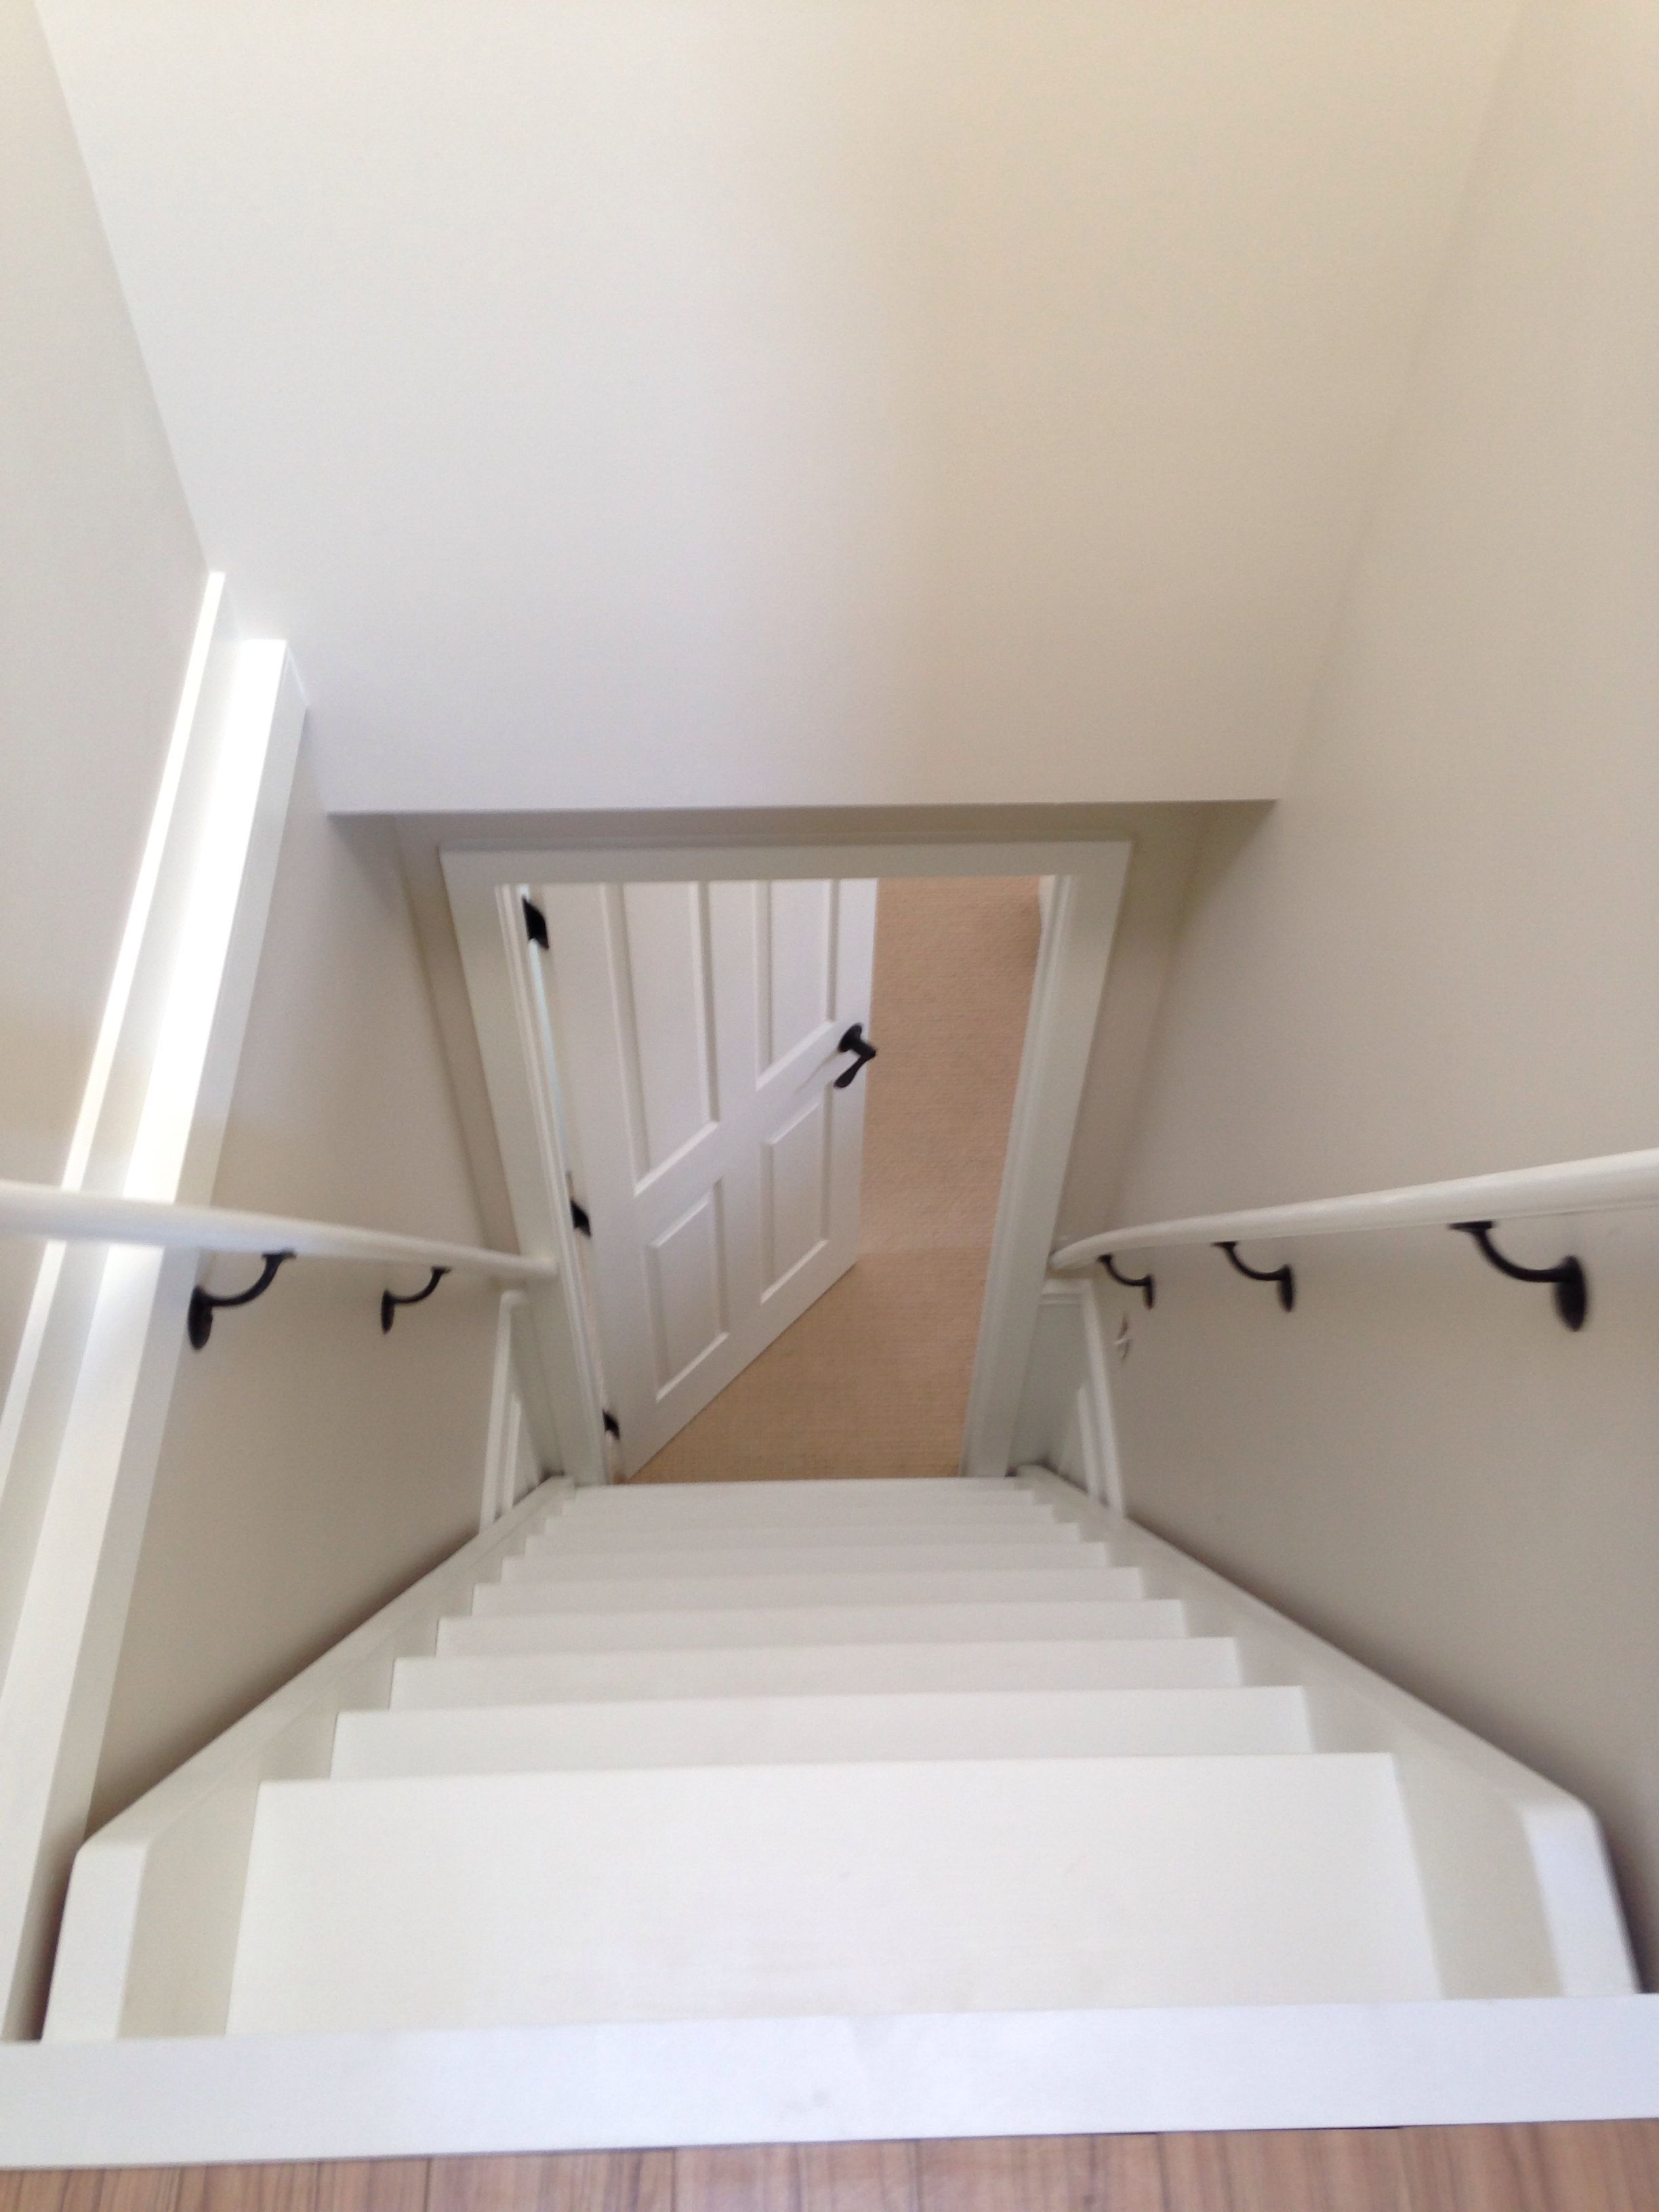 All Time Best Cool Tips Attic Before And After Projects Attic Architecture Loft Ladders Attic Access Closet Attic D Attic Renovation Attic Remodel Attic Rooms